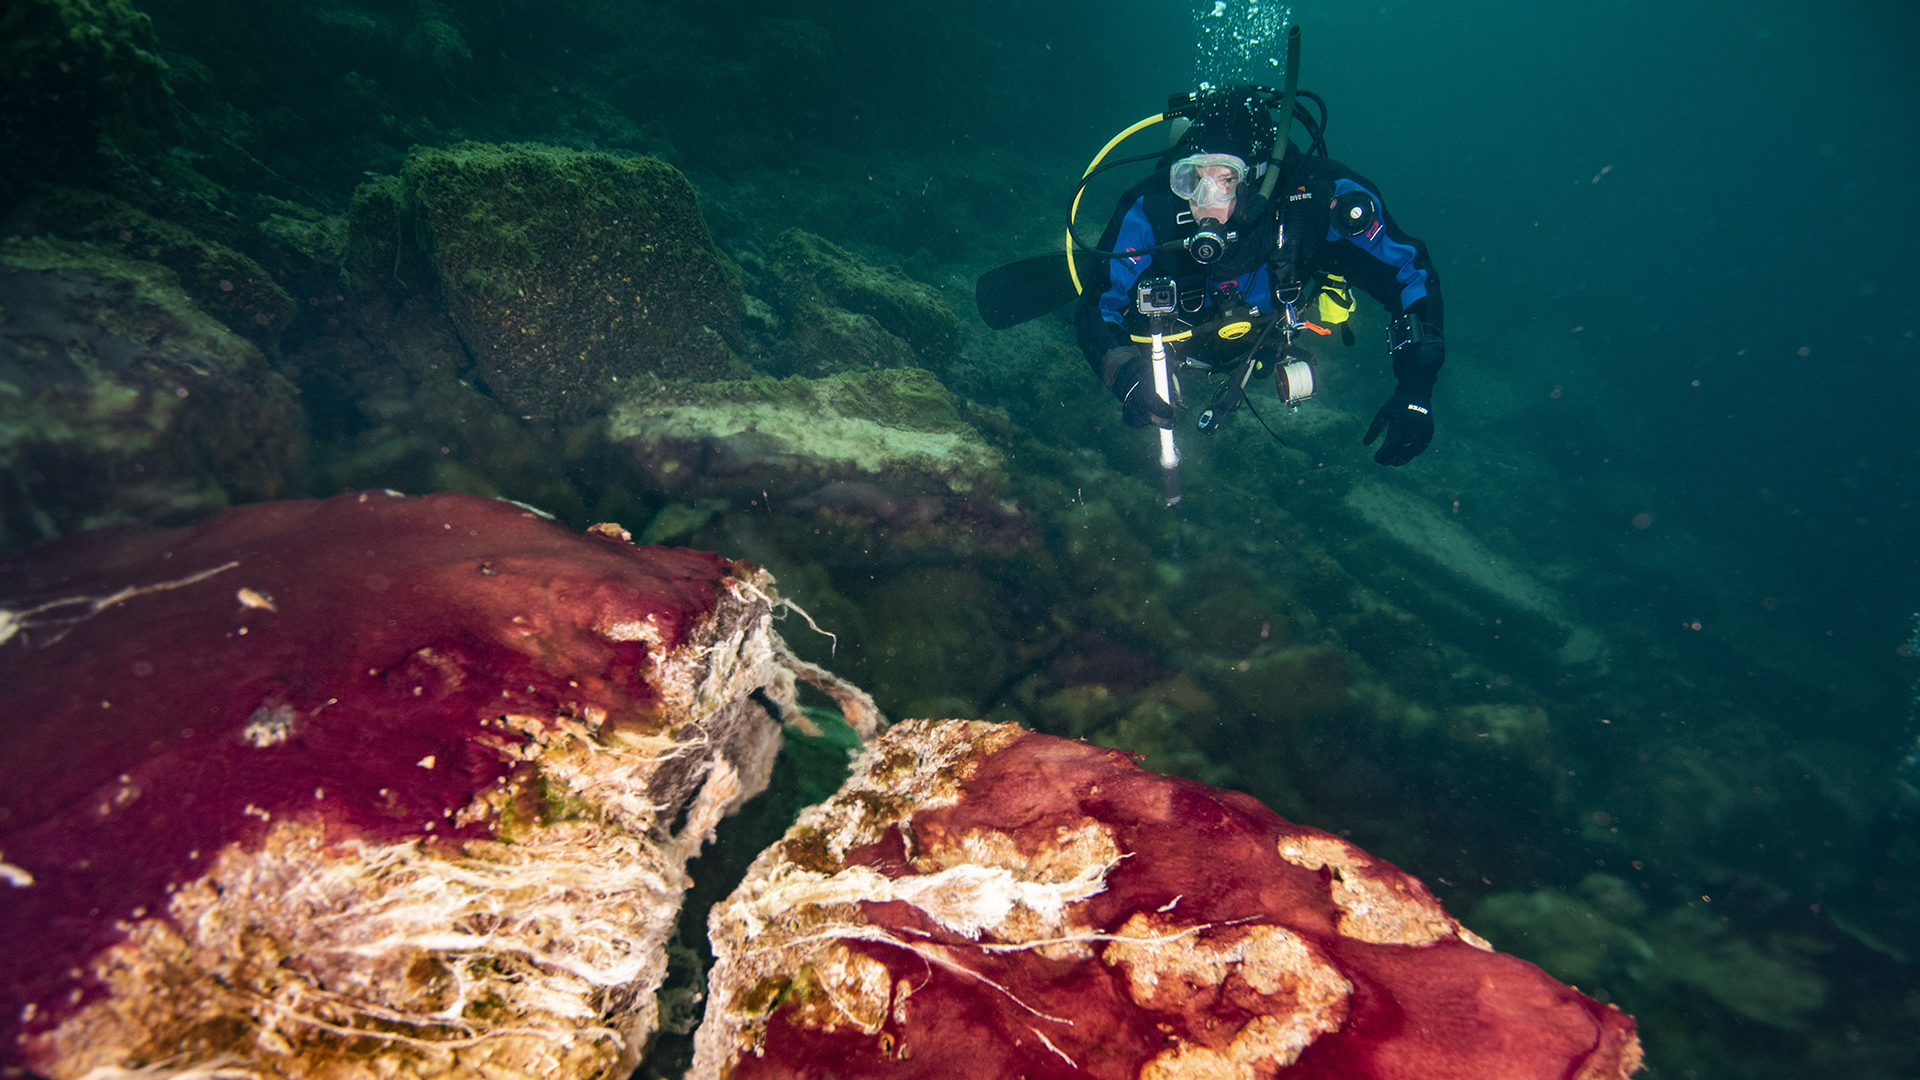 A scuba diver observes the purple, white and green microbes covering rocks in Lake Huron's Middle Island Sinkhole.